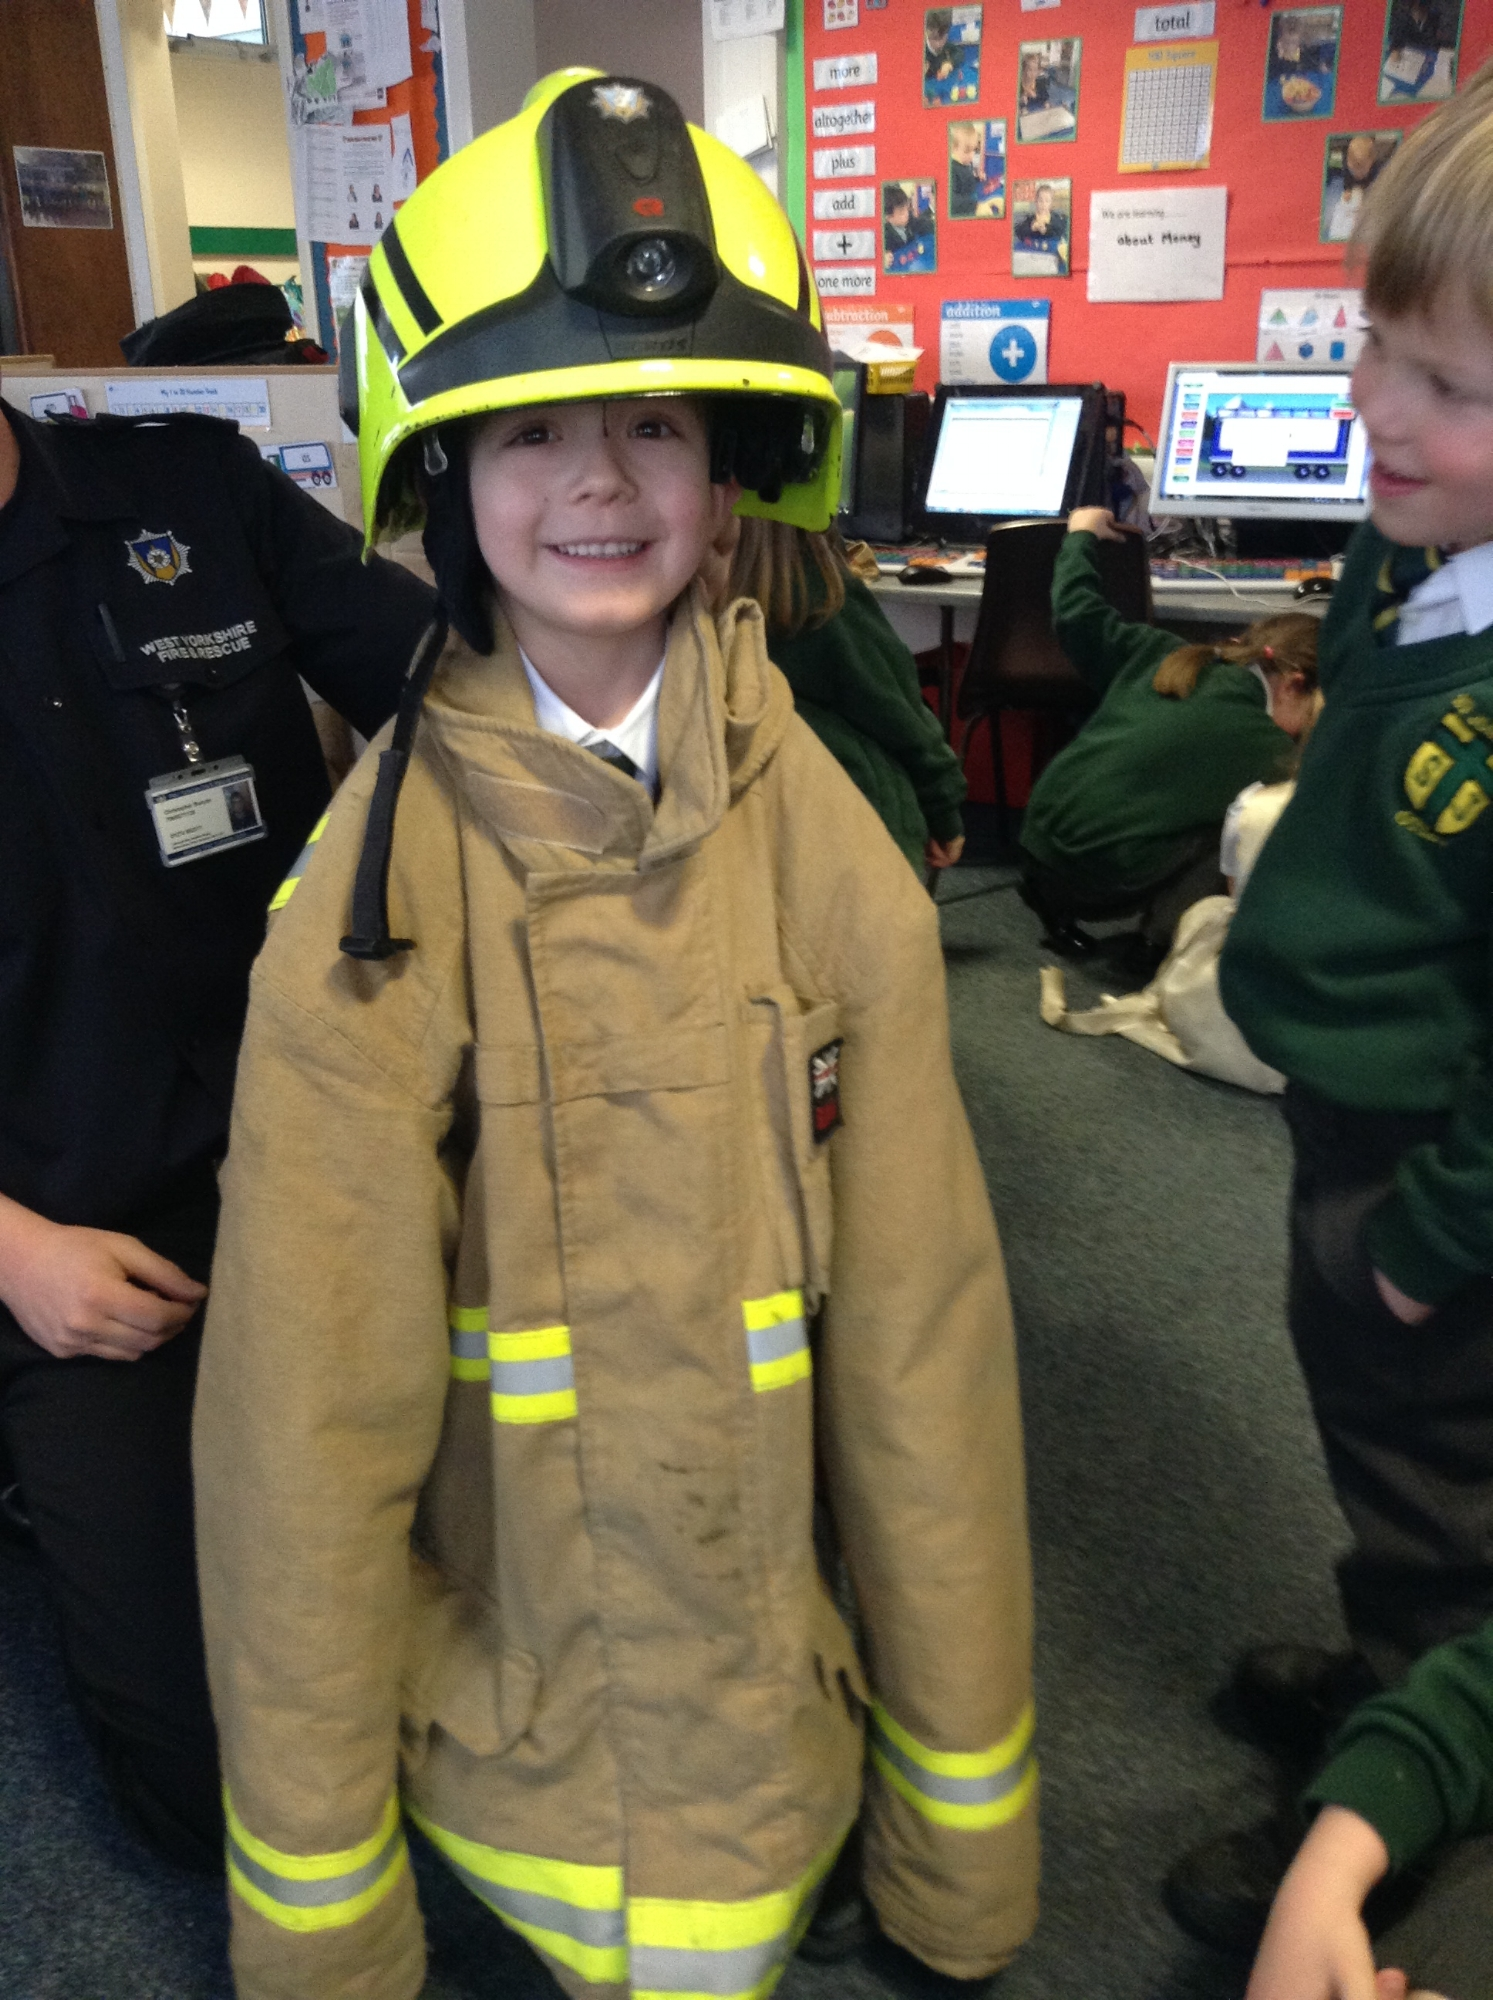 We enjoyed trying on the fire clothes.